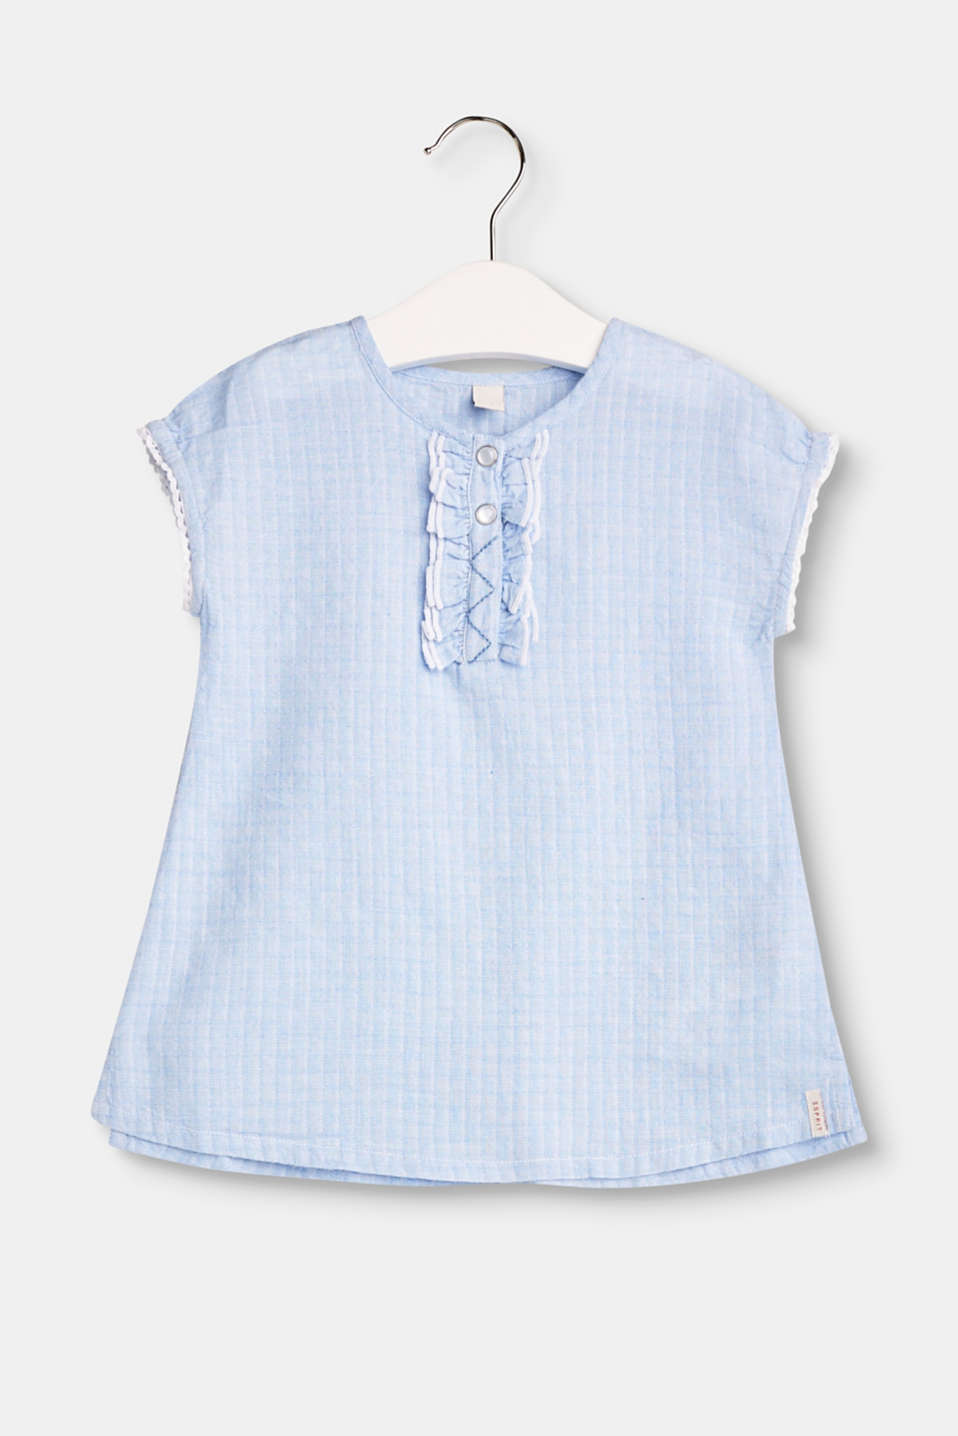 Esprit - Textured cotton dress with frills